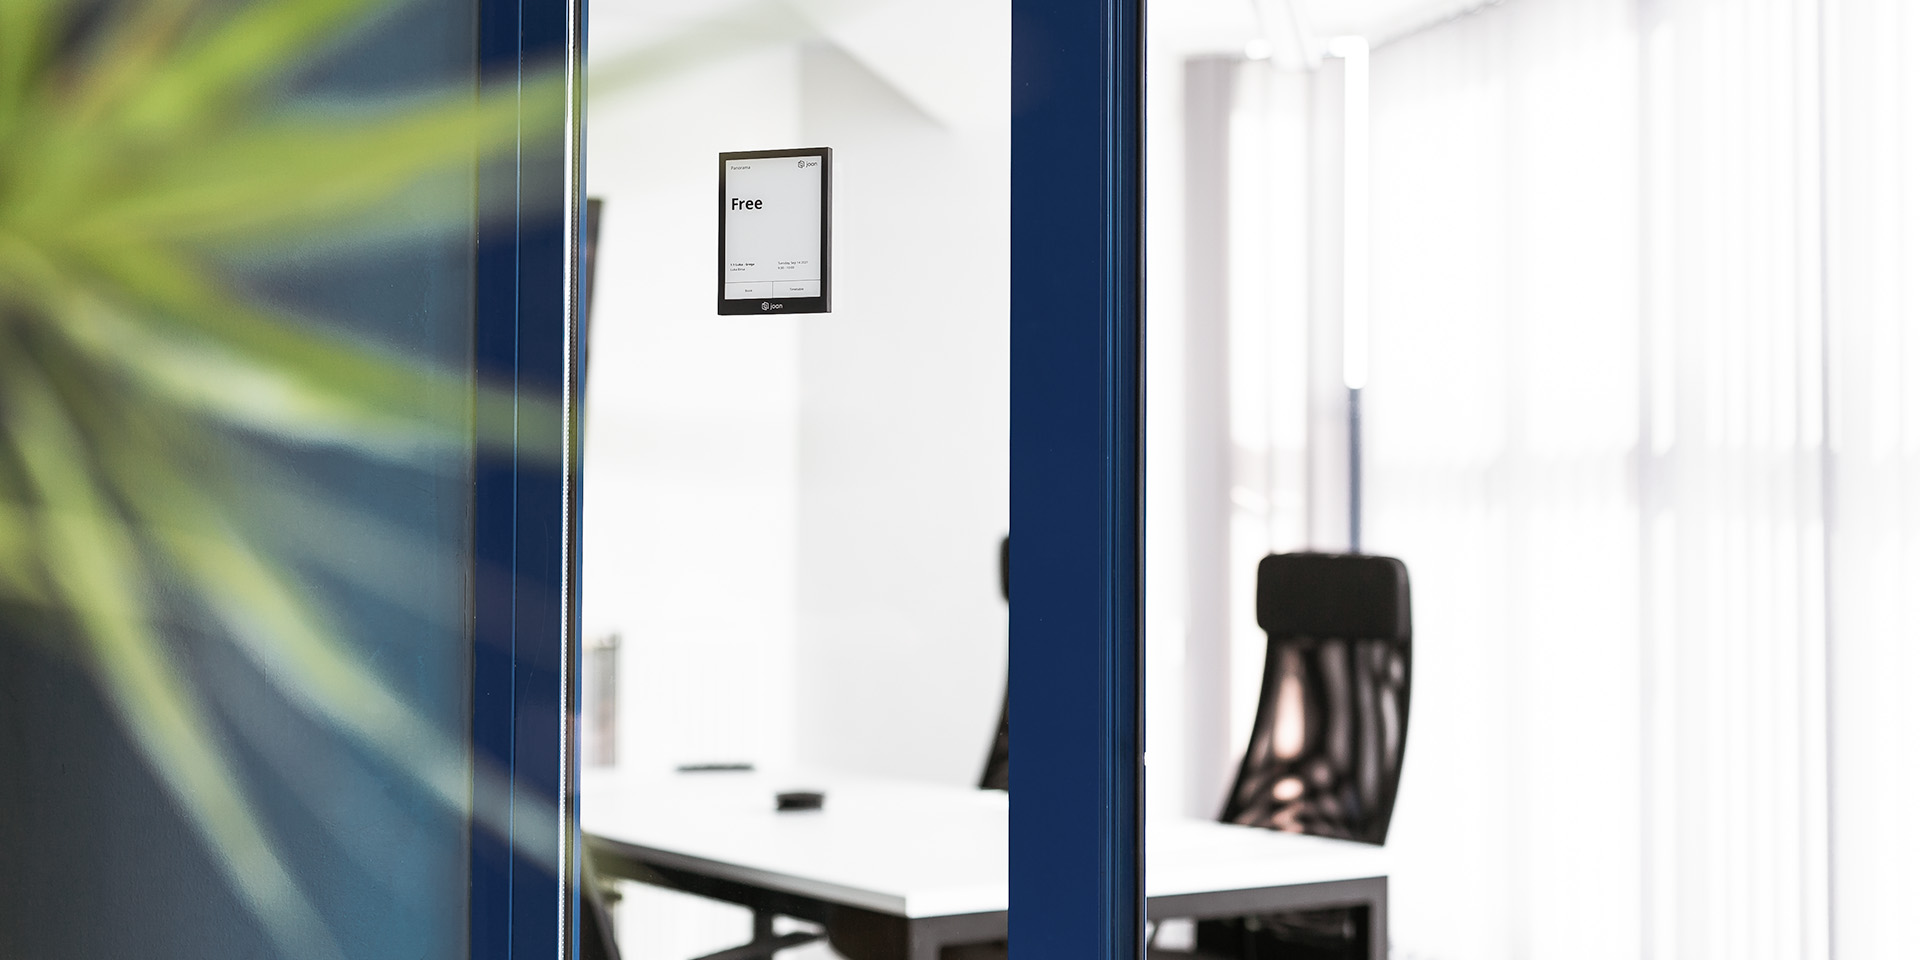 Joan 6 Pro: The trendiest meeting room display on the market with no-hassle management